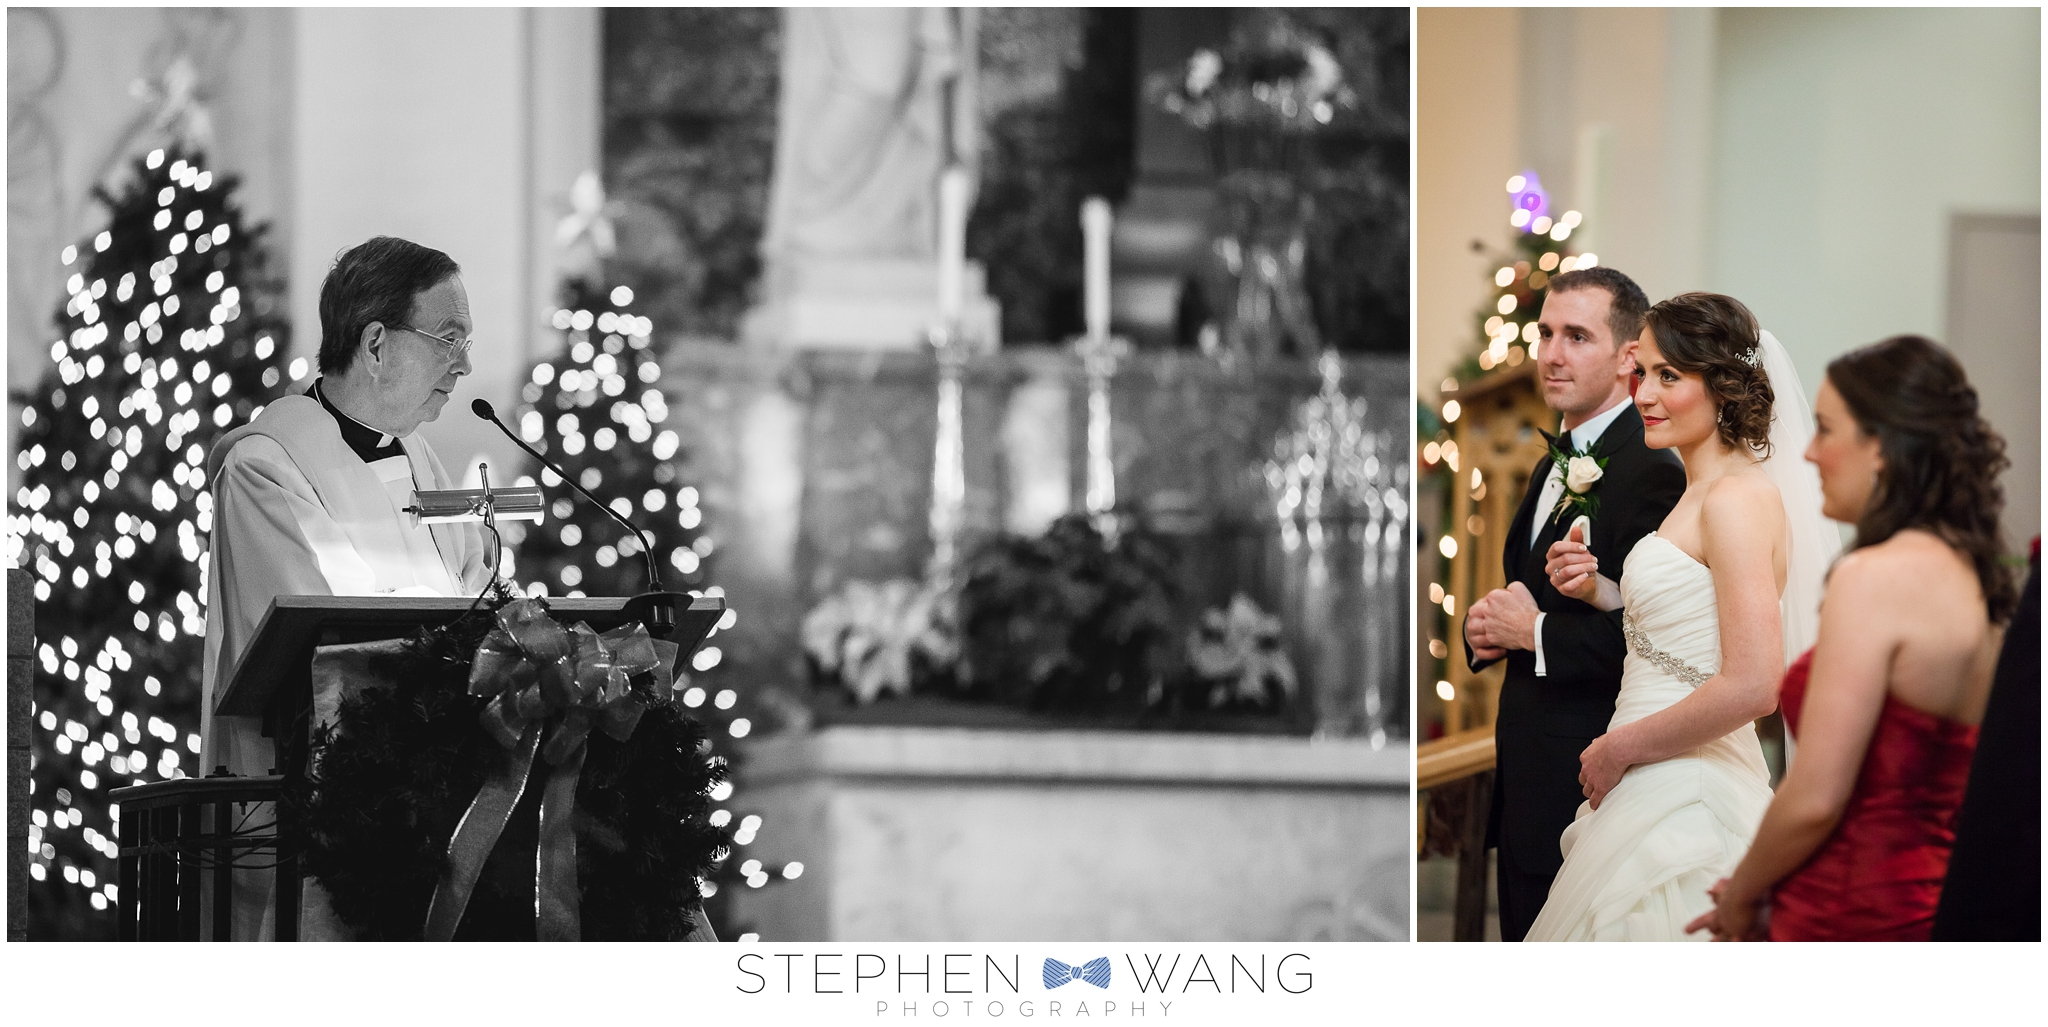 Stephen Wang Photography Wedding Photographer Connecticut CT Aquaturf Southington Winter Wedding Christmas Wedding Holiday Season-12-18_0009.jpg